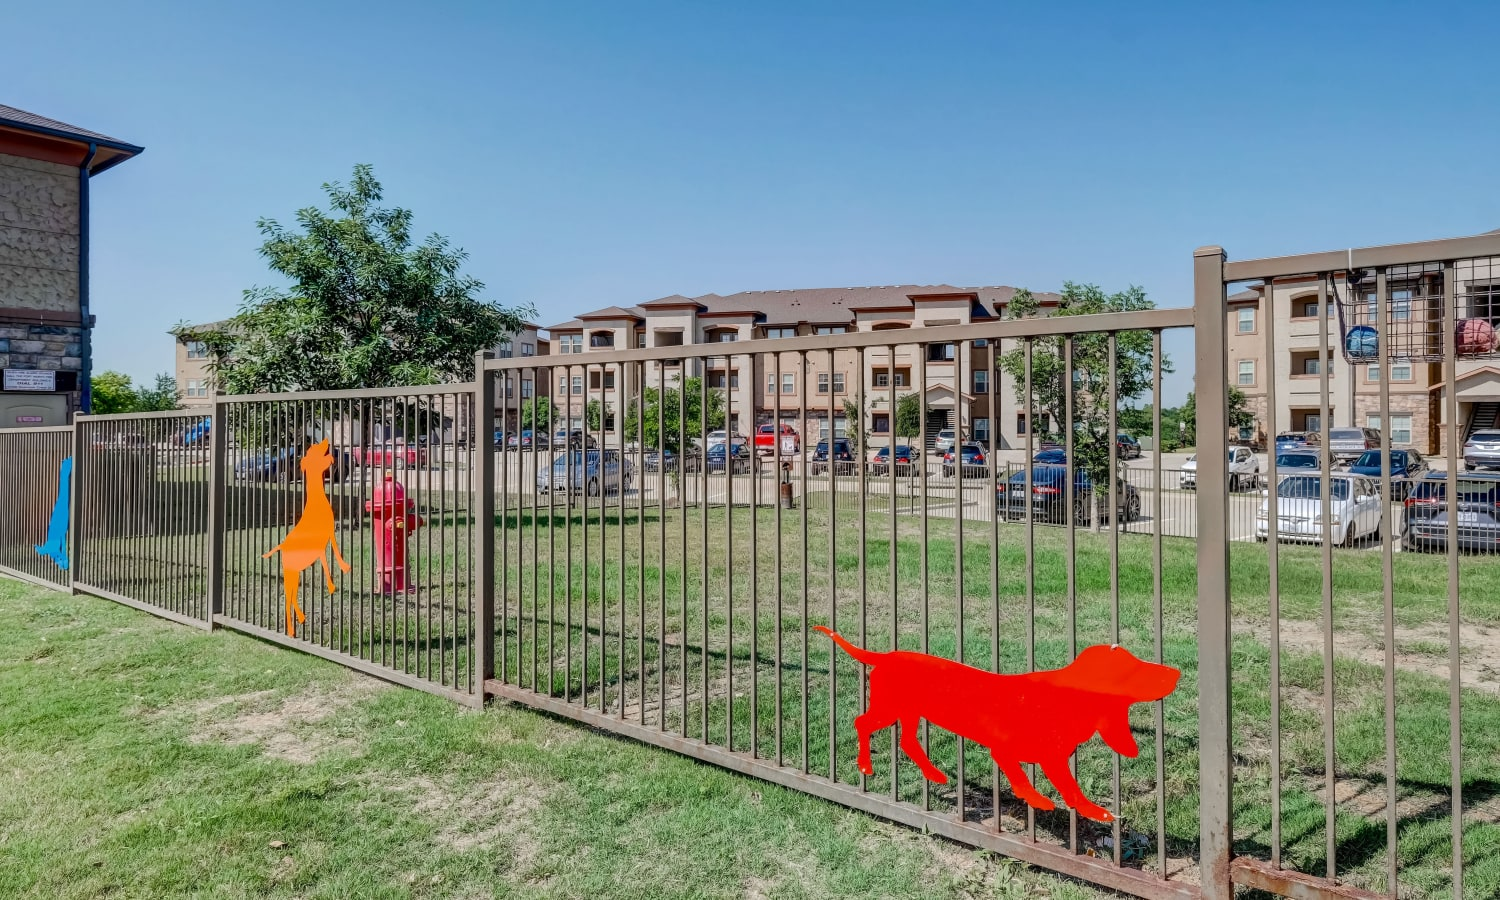 Enjoy Apartments with a Dog Park at Overlook Ranch